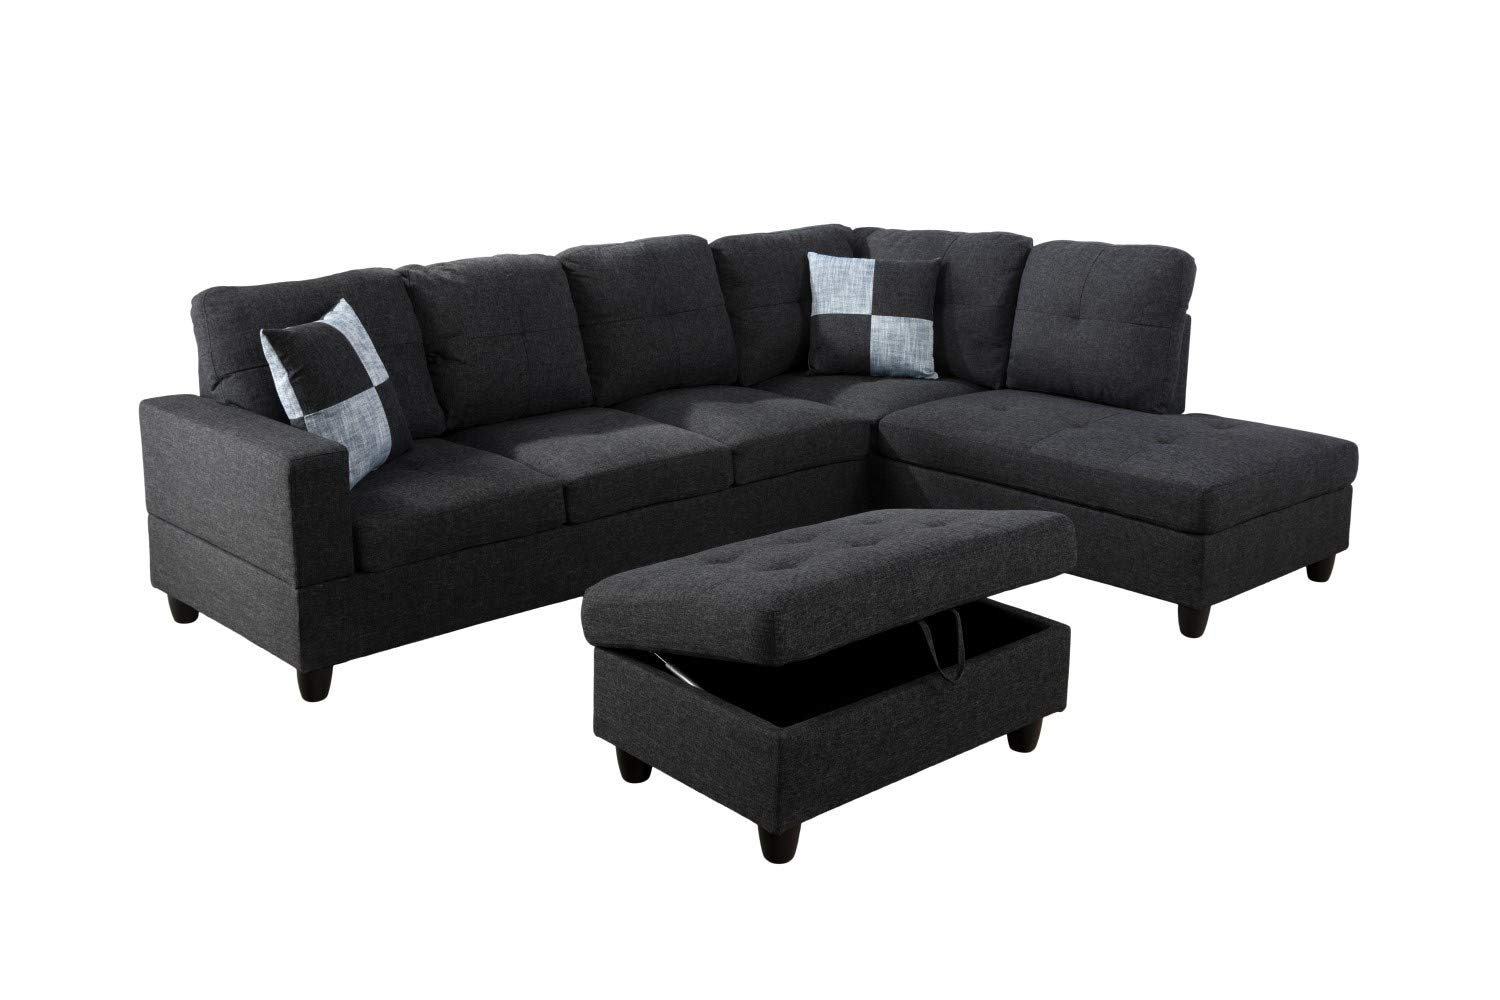 Amazon.com: Lifestyle Furniture Left Facing 3PC Sectional ...